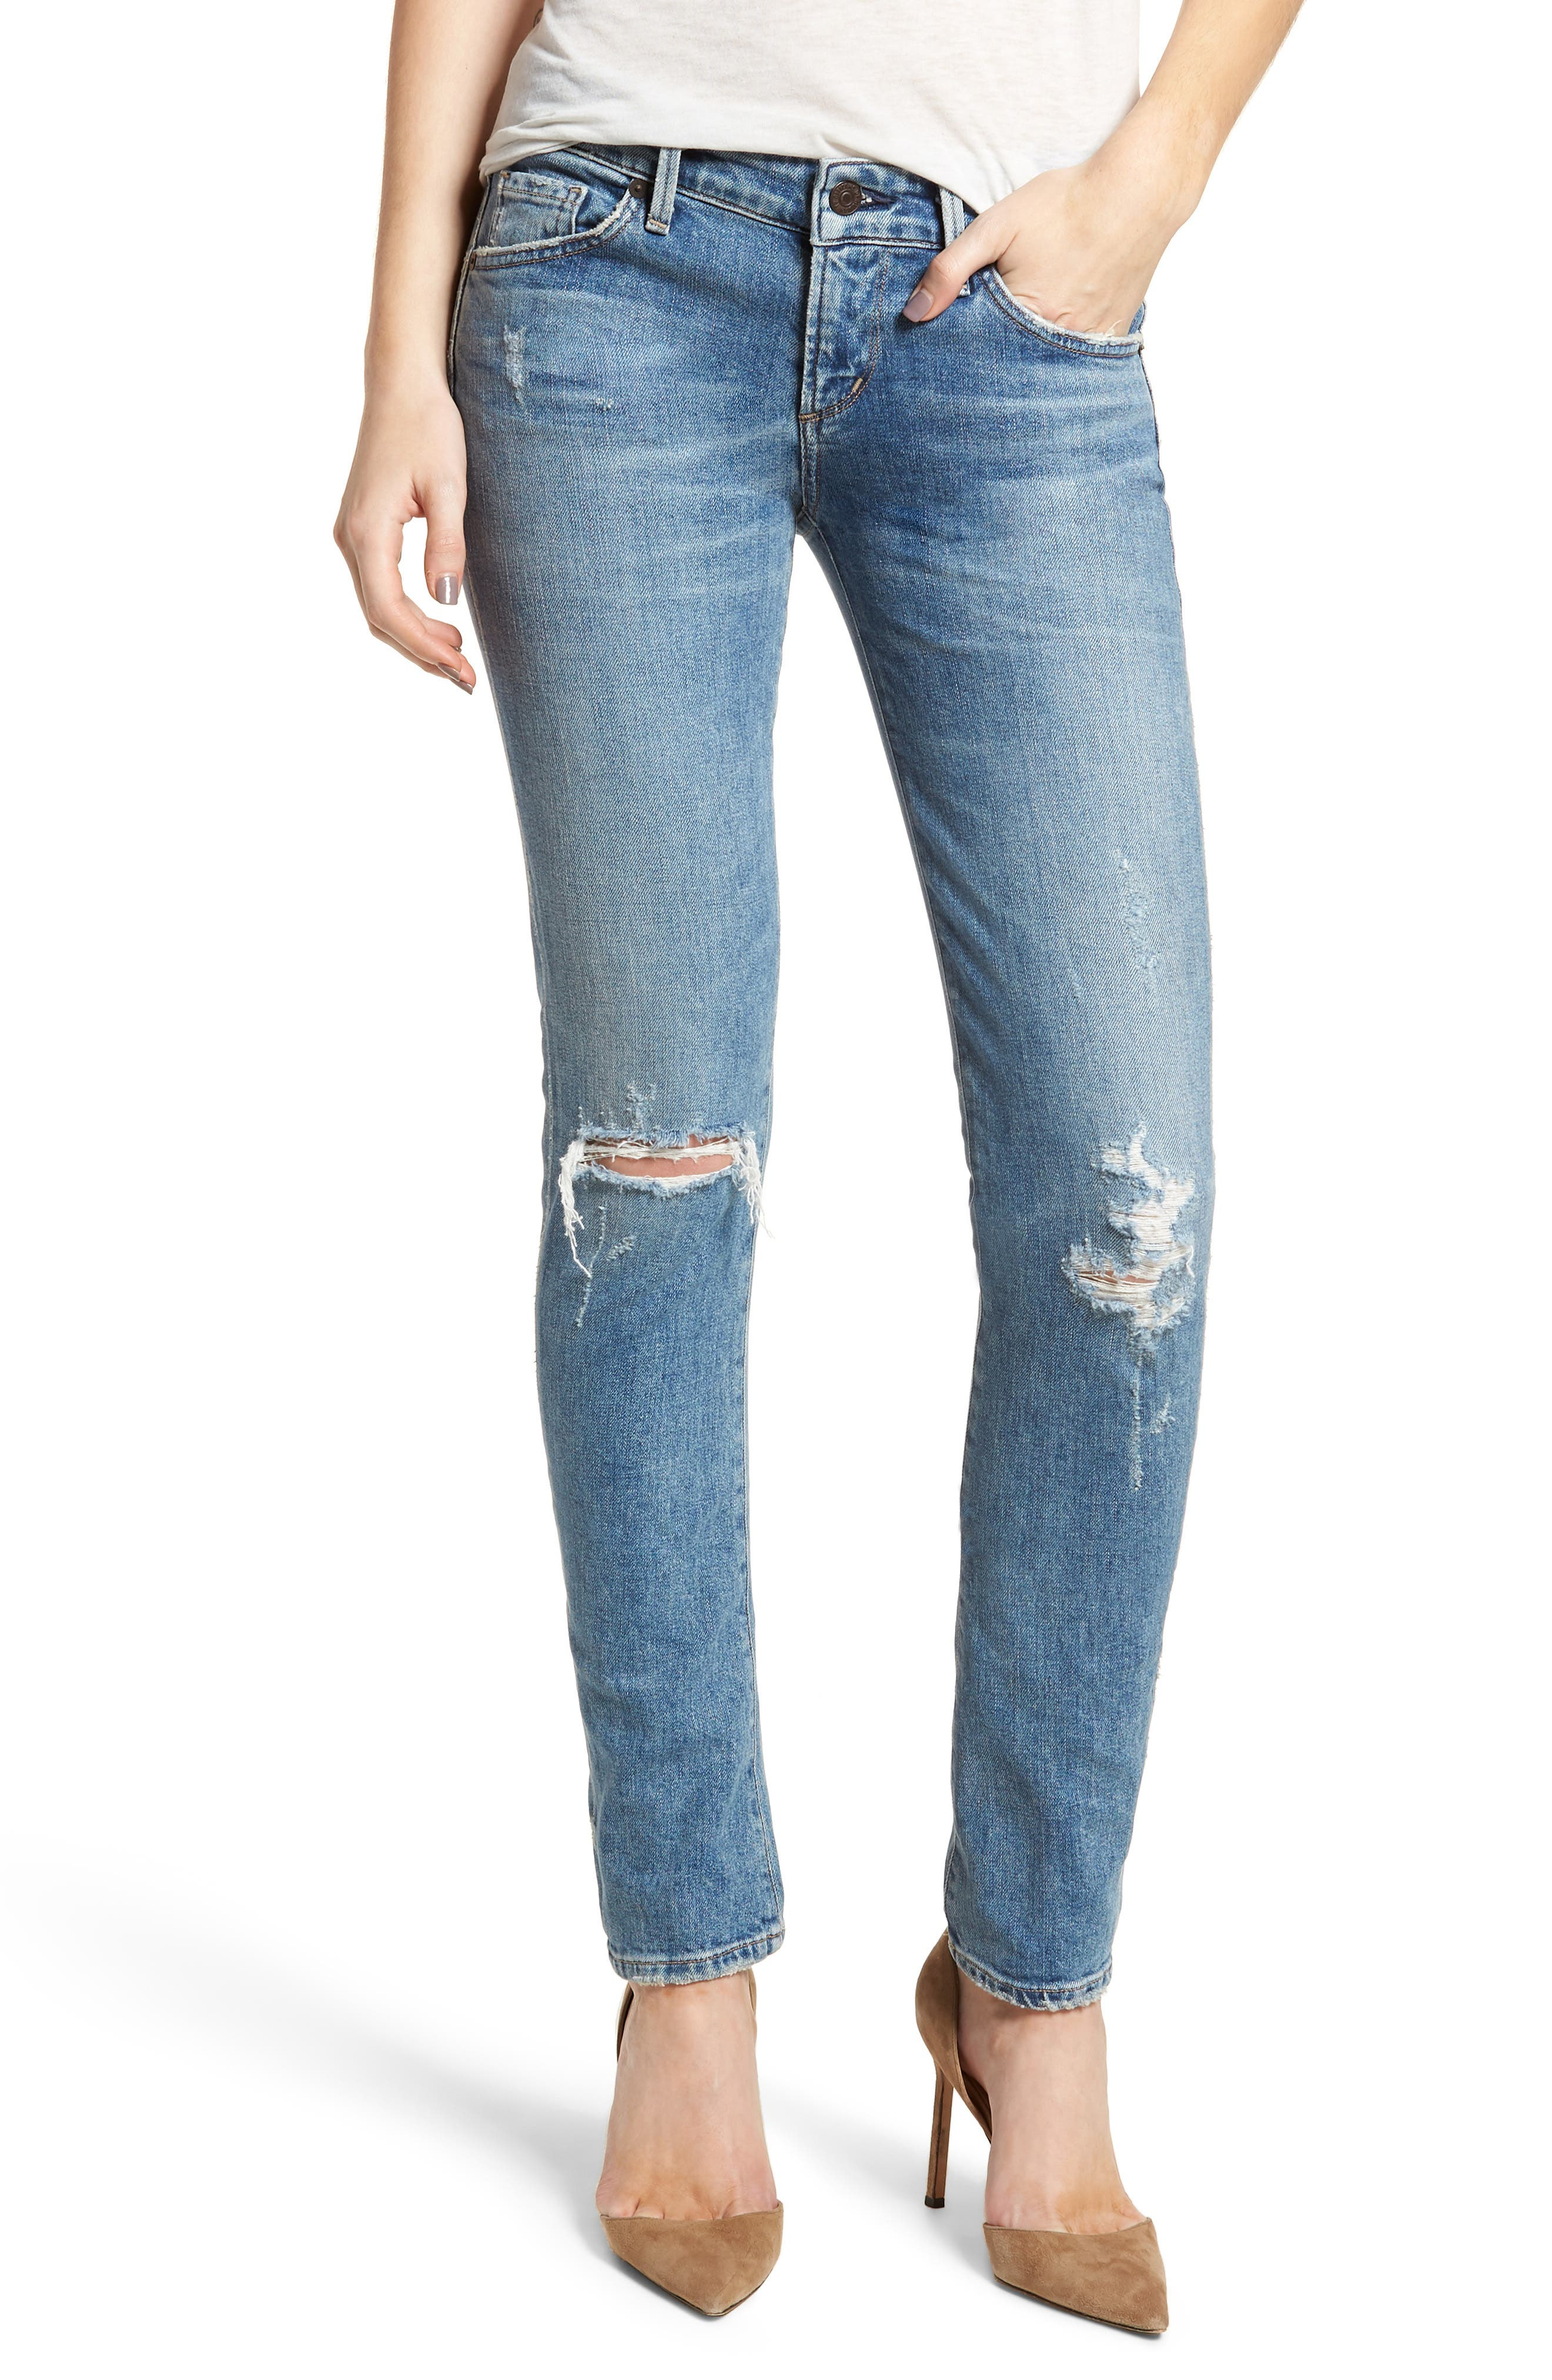 CITIZENS OF HUMANITY Racer Ripped Skinny Jeans, Main, color, DISTRESSED ENCORE